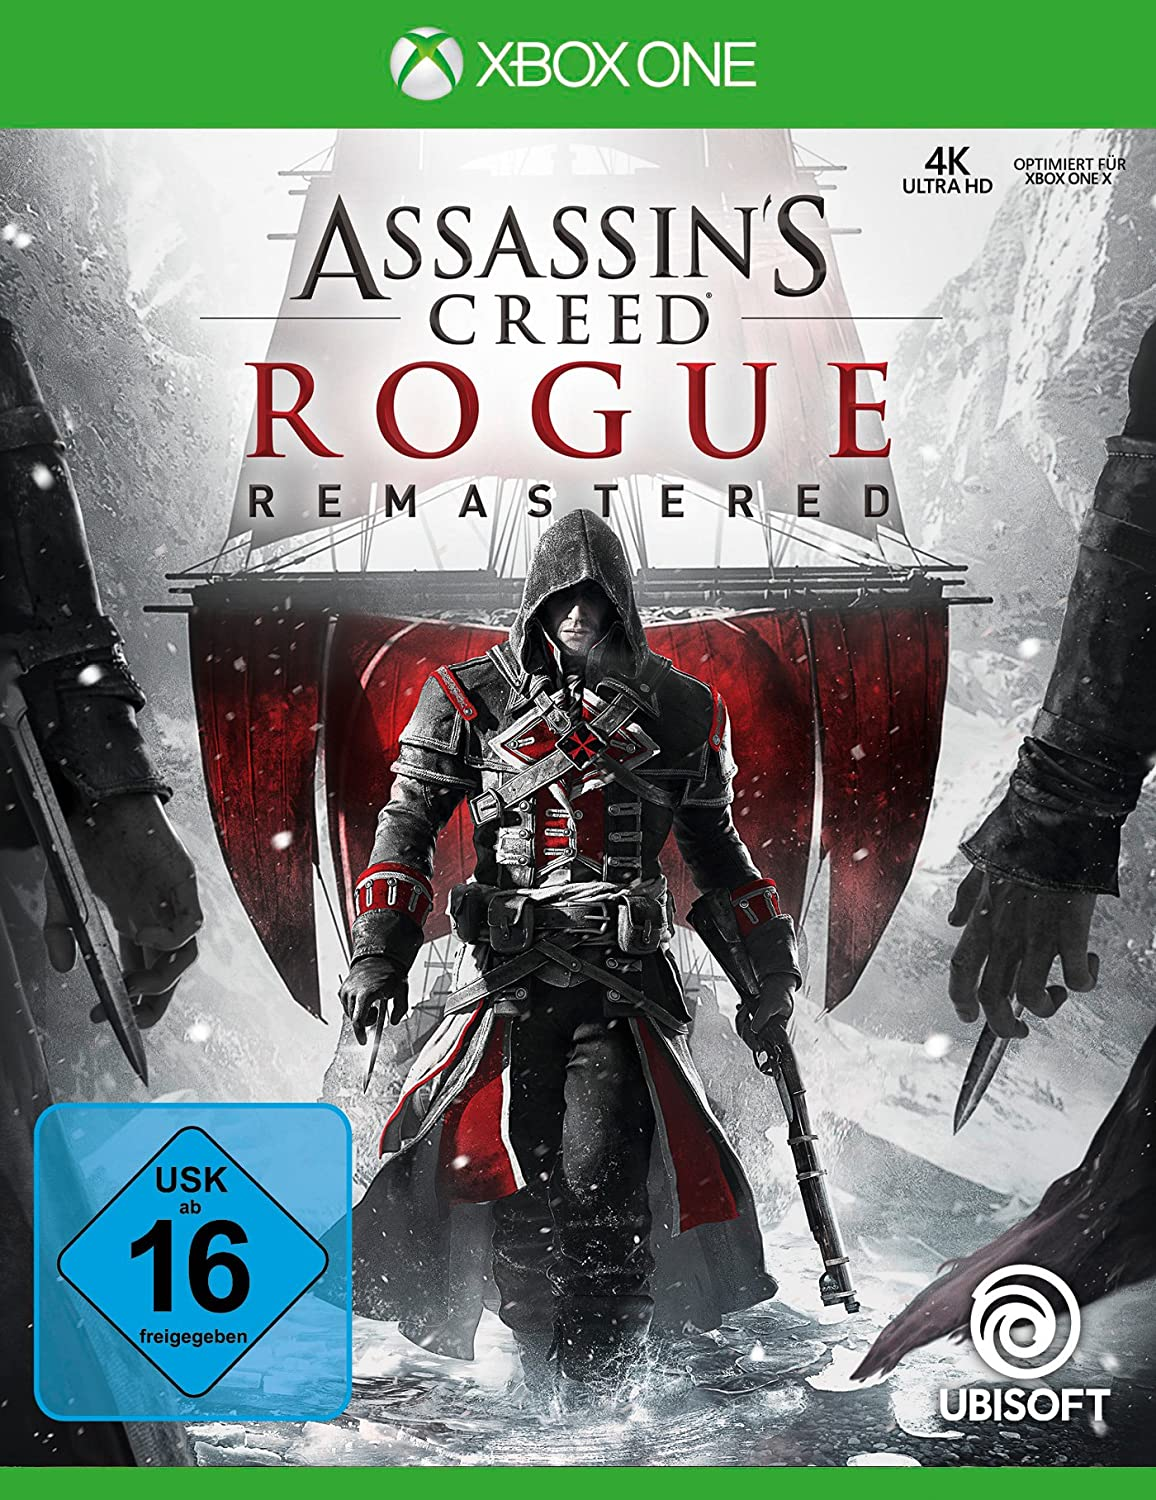 Assassin's Creed - Rogue Remastered